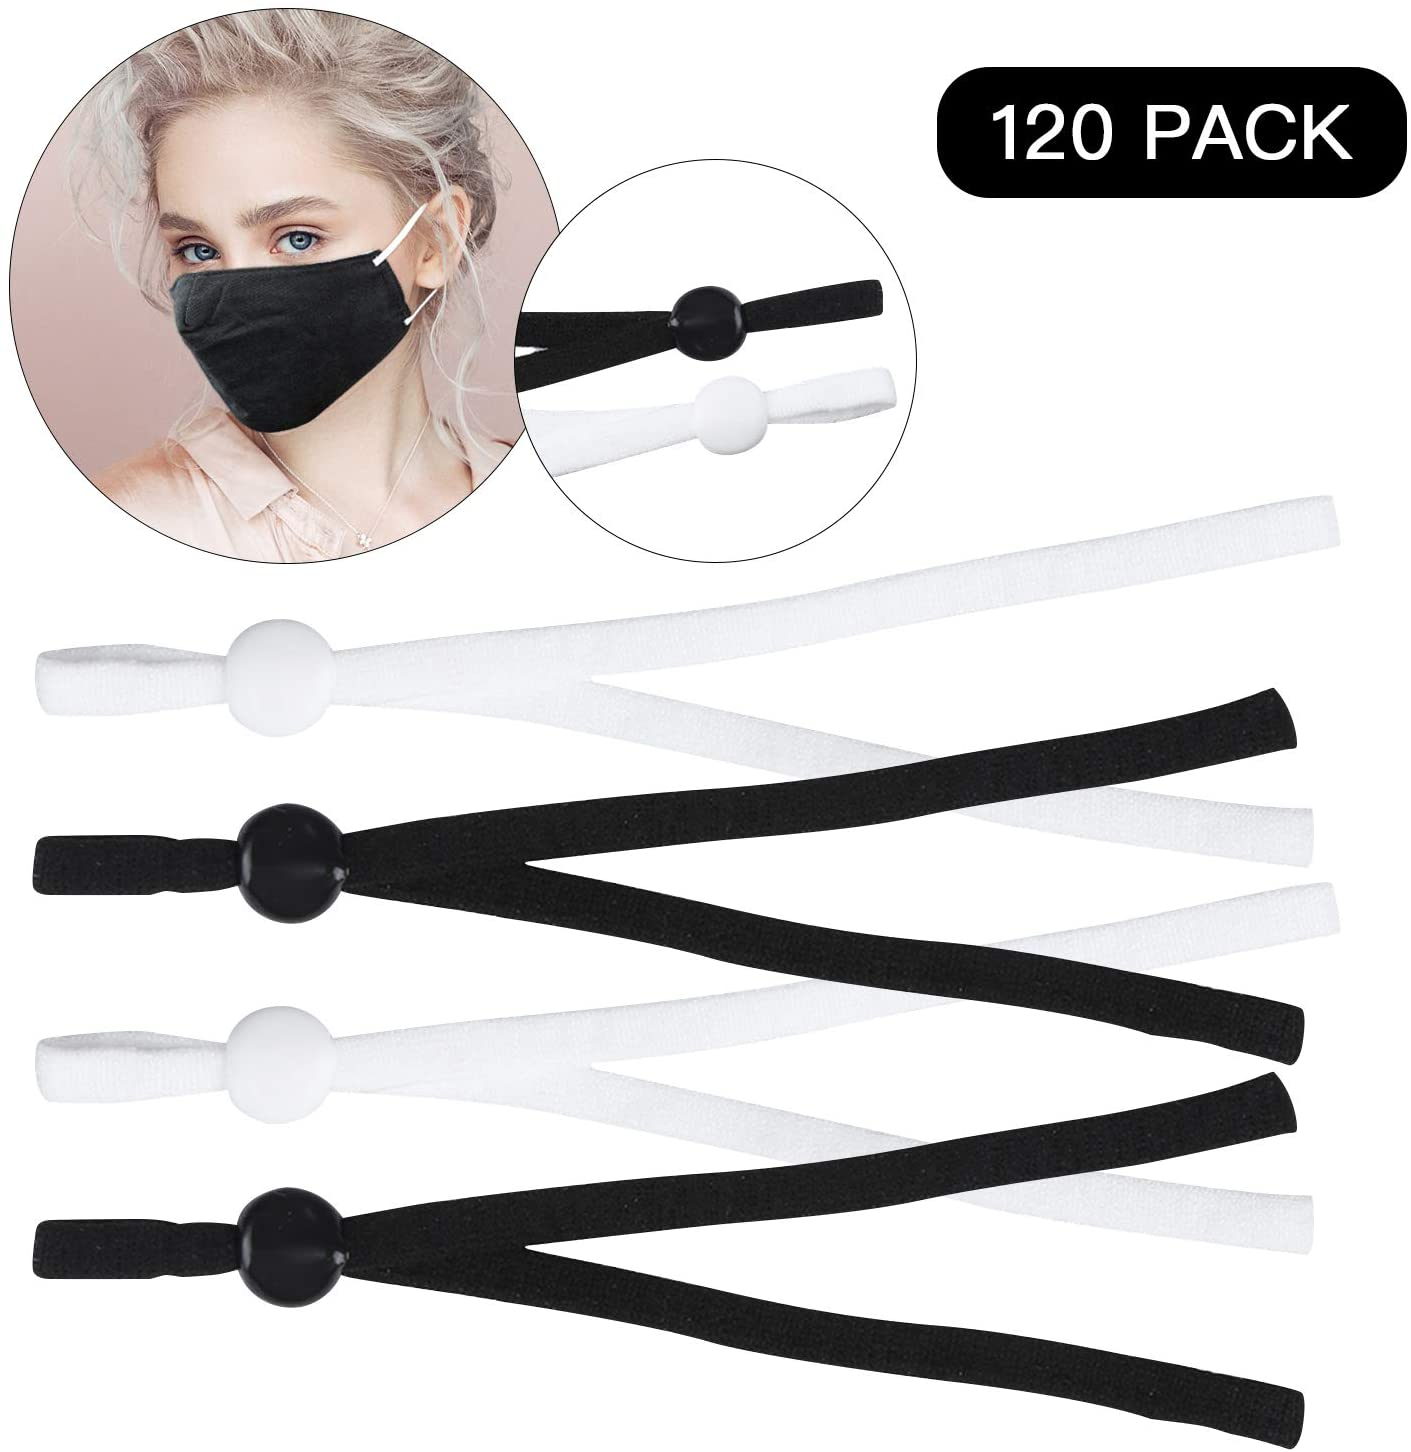 HOTYELL 120 Pcs Elastic String for Masks with Cord Locks, Premium Elastic Bands Cord Rope for Sewing, Toggles for Drawstrings (60 Black + 60 White, 120 Pack)